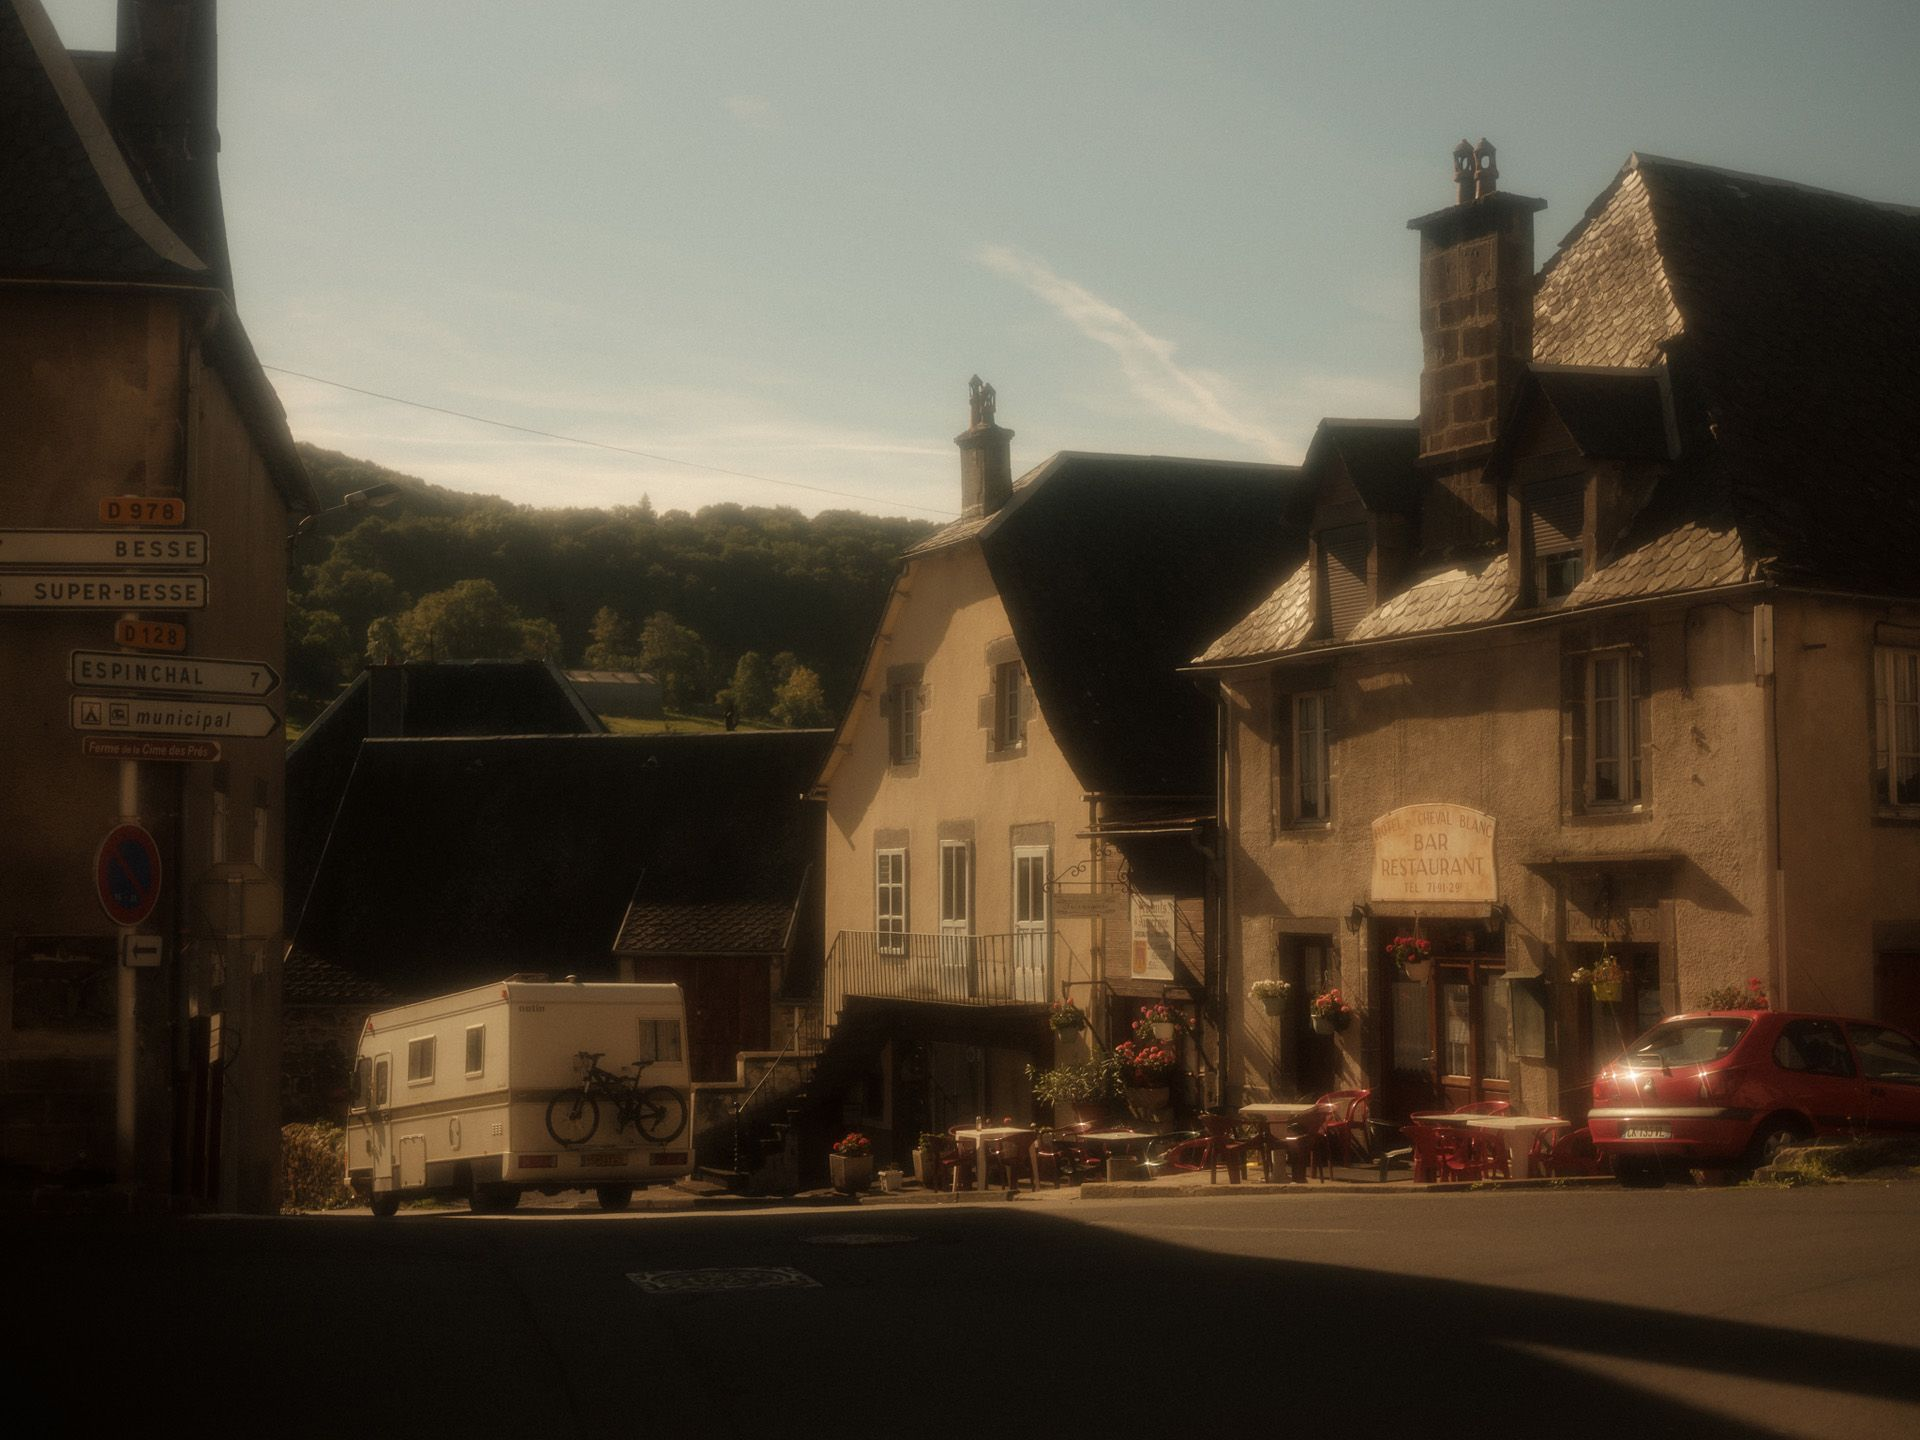 view of inside a village in Auvergne by Alexi Hobbs for Reflets de France